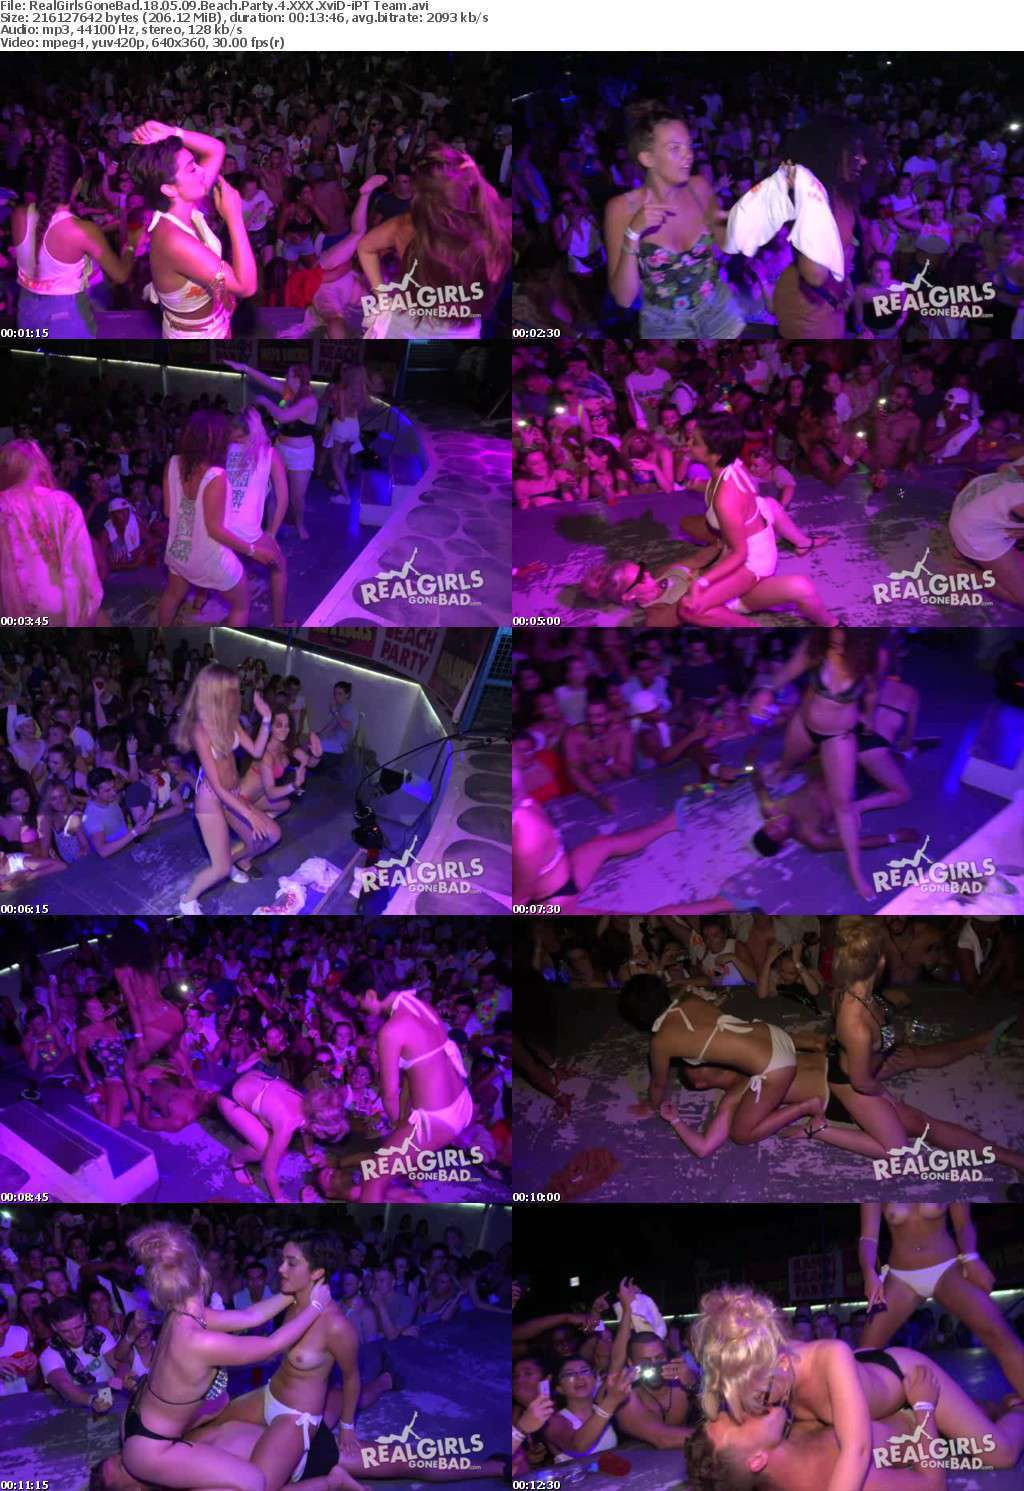 RealGirlsGoneBad 18 05 09 Beach Party 4 XXX